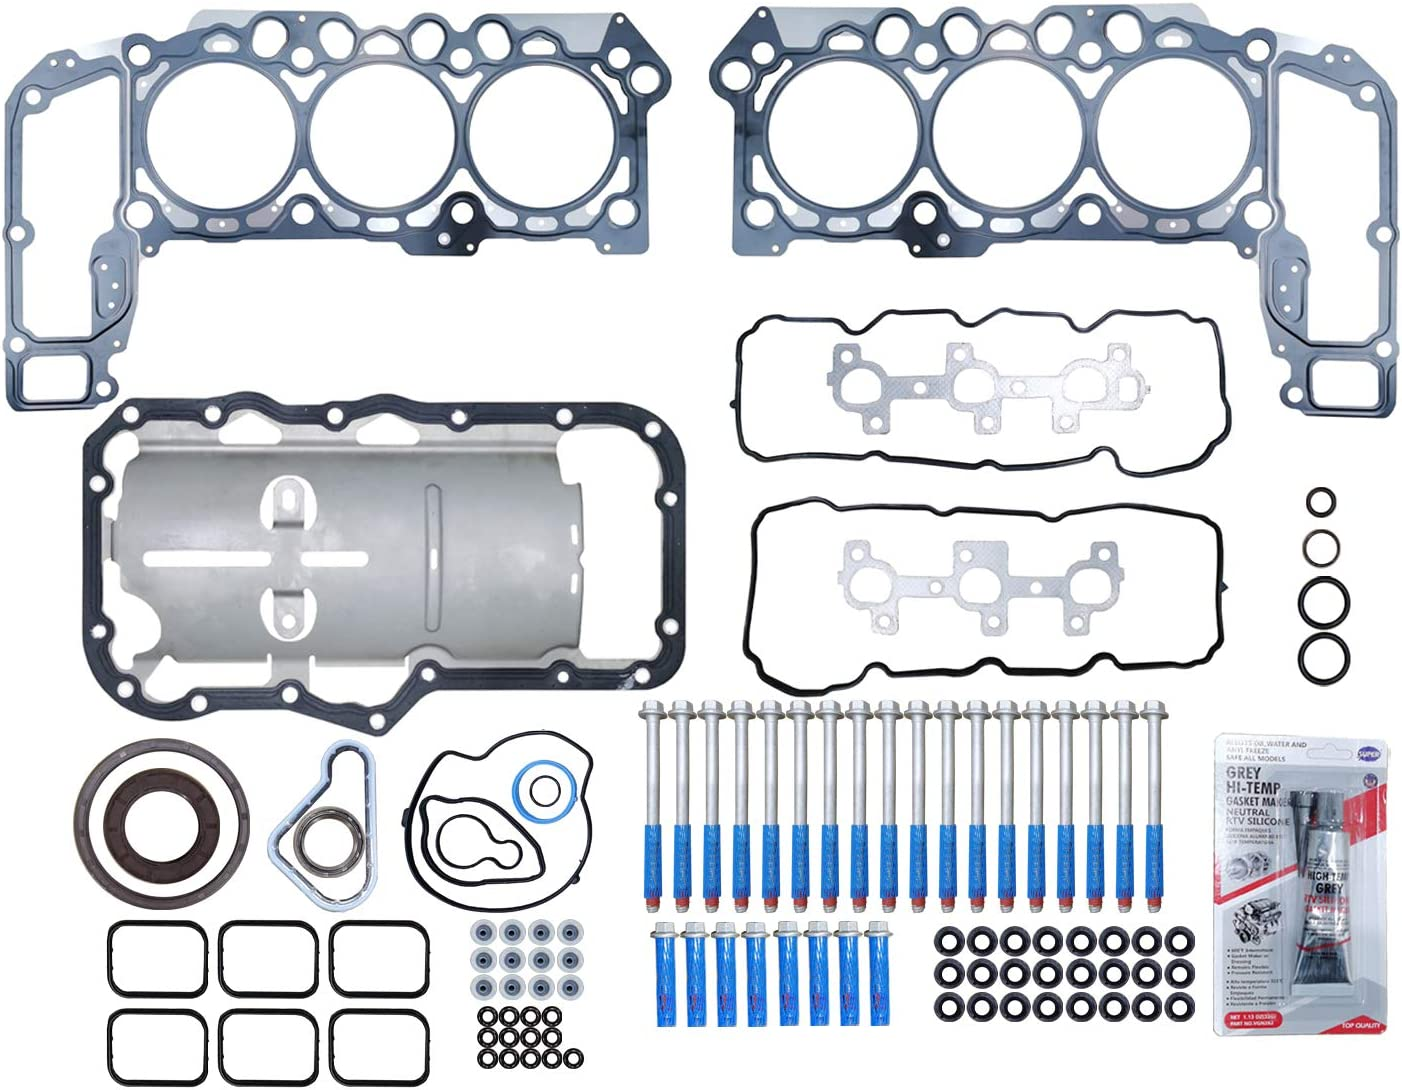 Reservation Max 82% OFF N+A Head Gasket Set Compatible with Ref# HS26229PT-1 DODGE JEEP